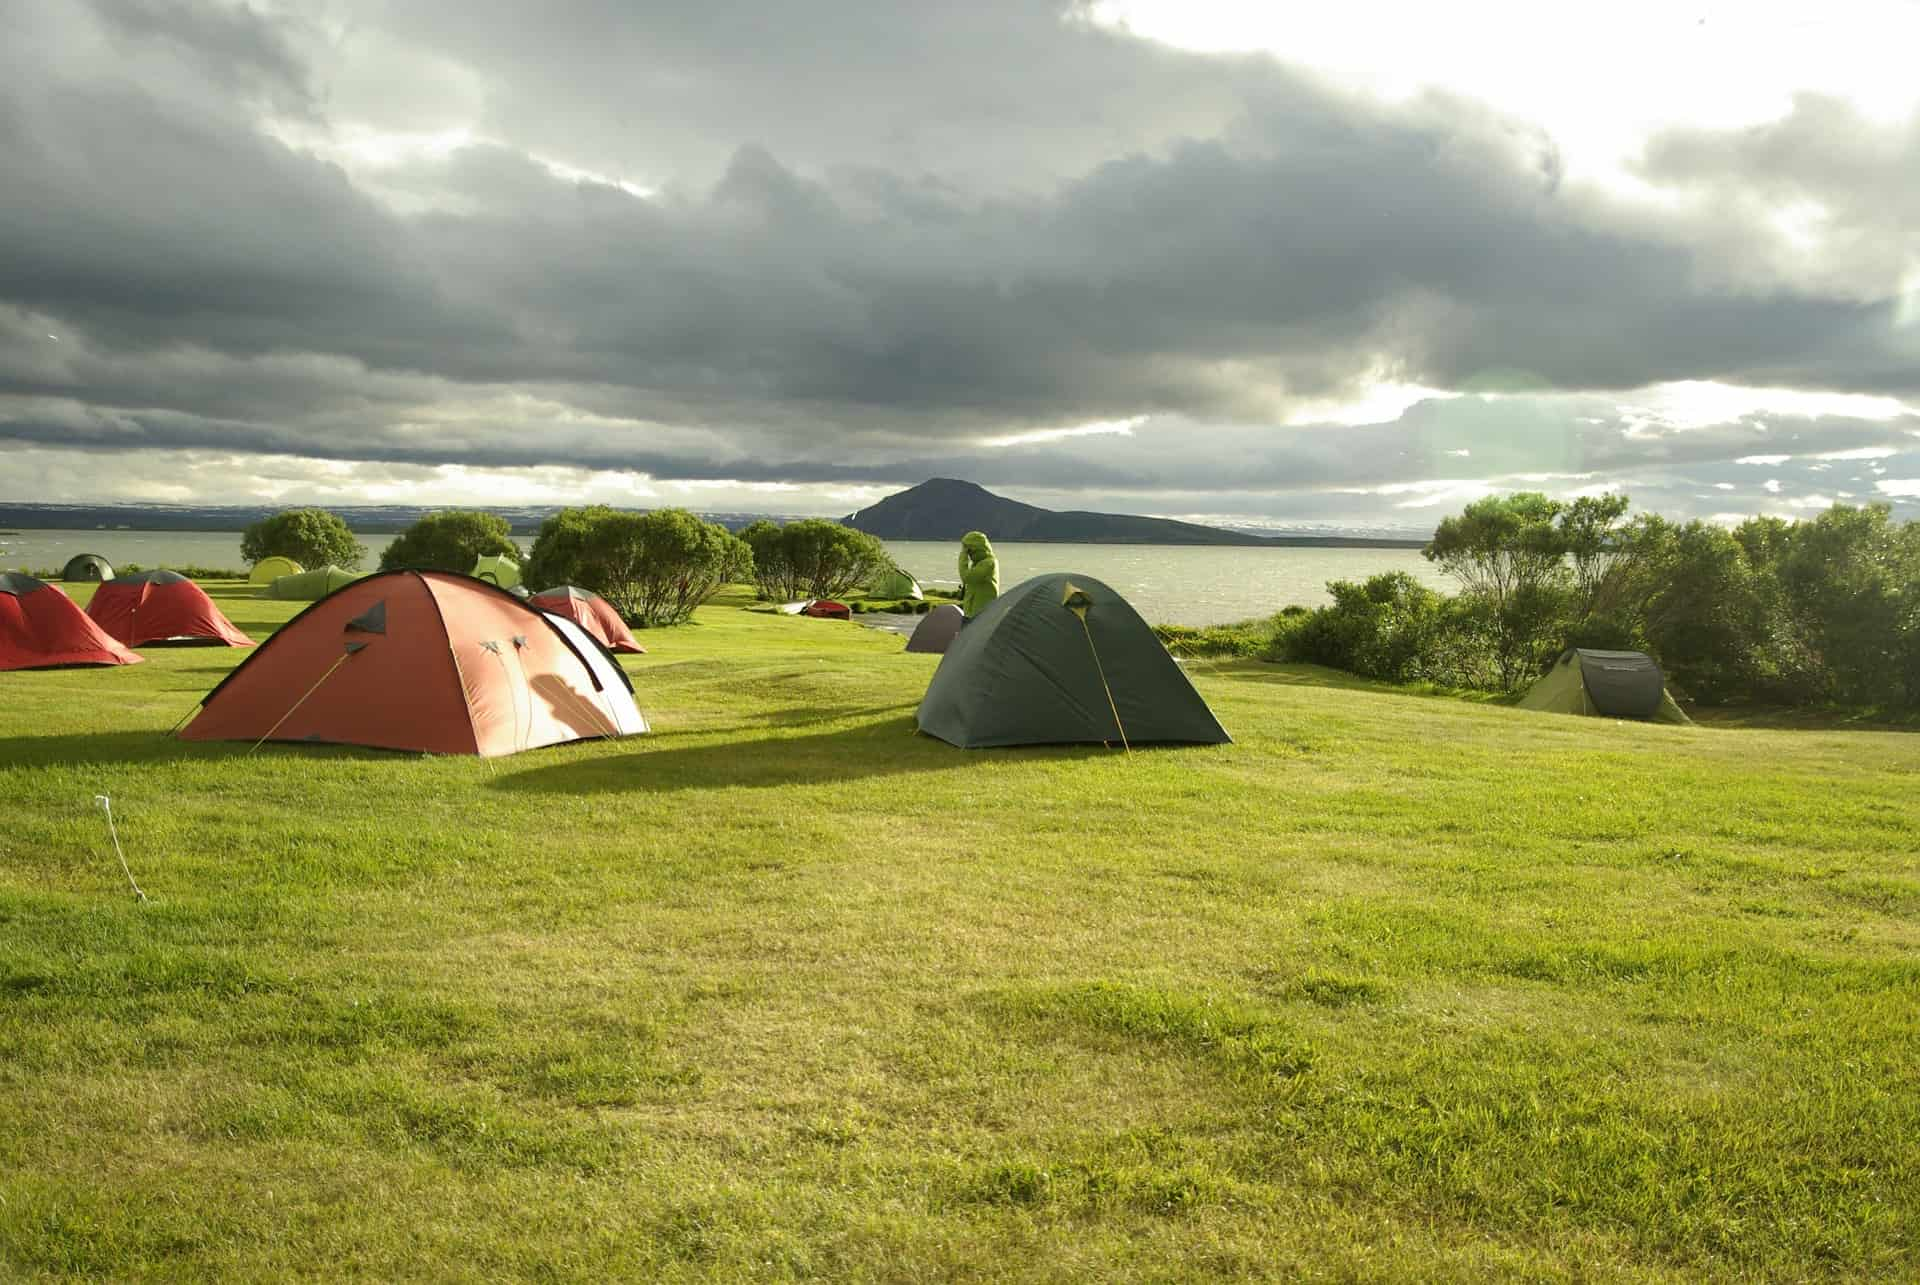 Lake Myvatn is one of the beautiful places to set up your tent in Iceland